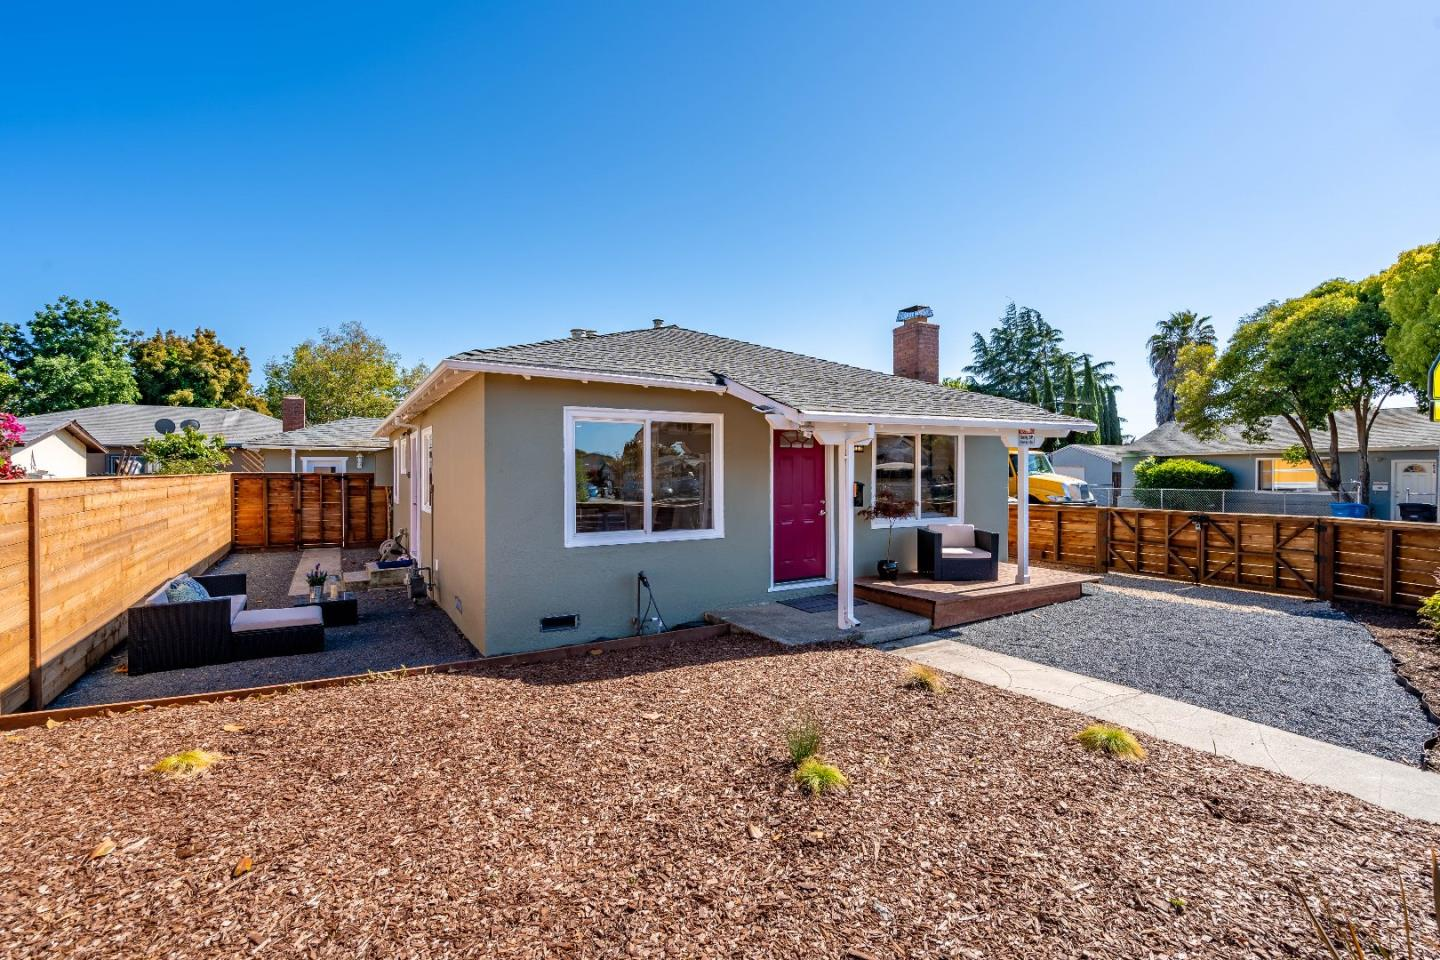 Detail Gallery Image 1 of 32 For 1100 Garden St, East Palo Alto, CA, 94303 - 3 Beds | 1 Baths